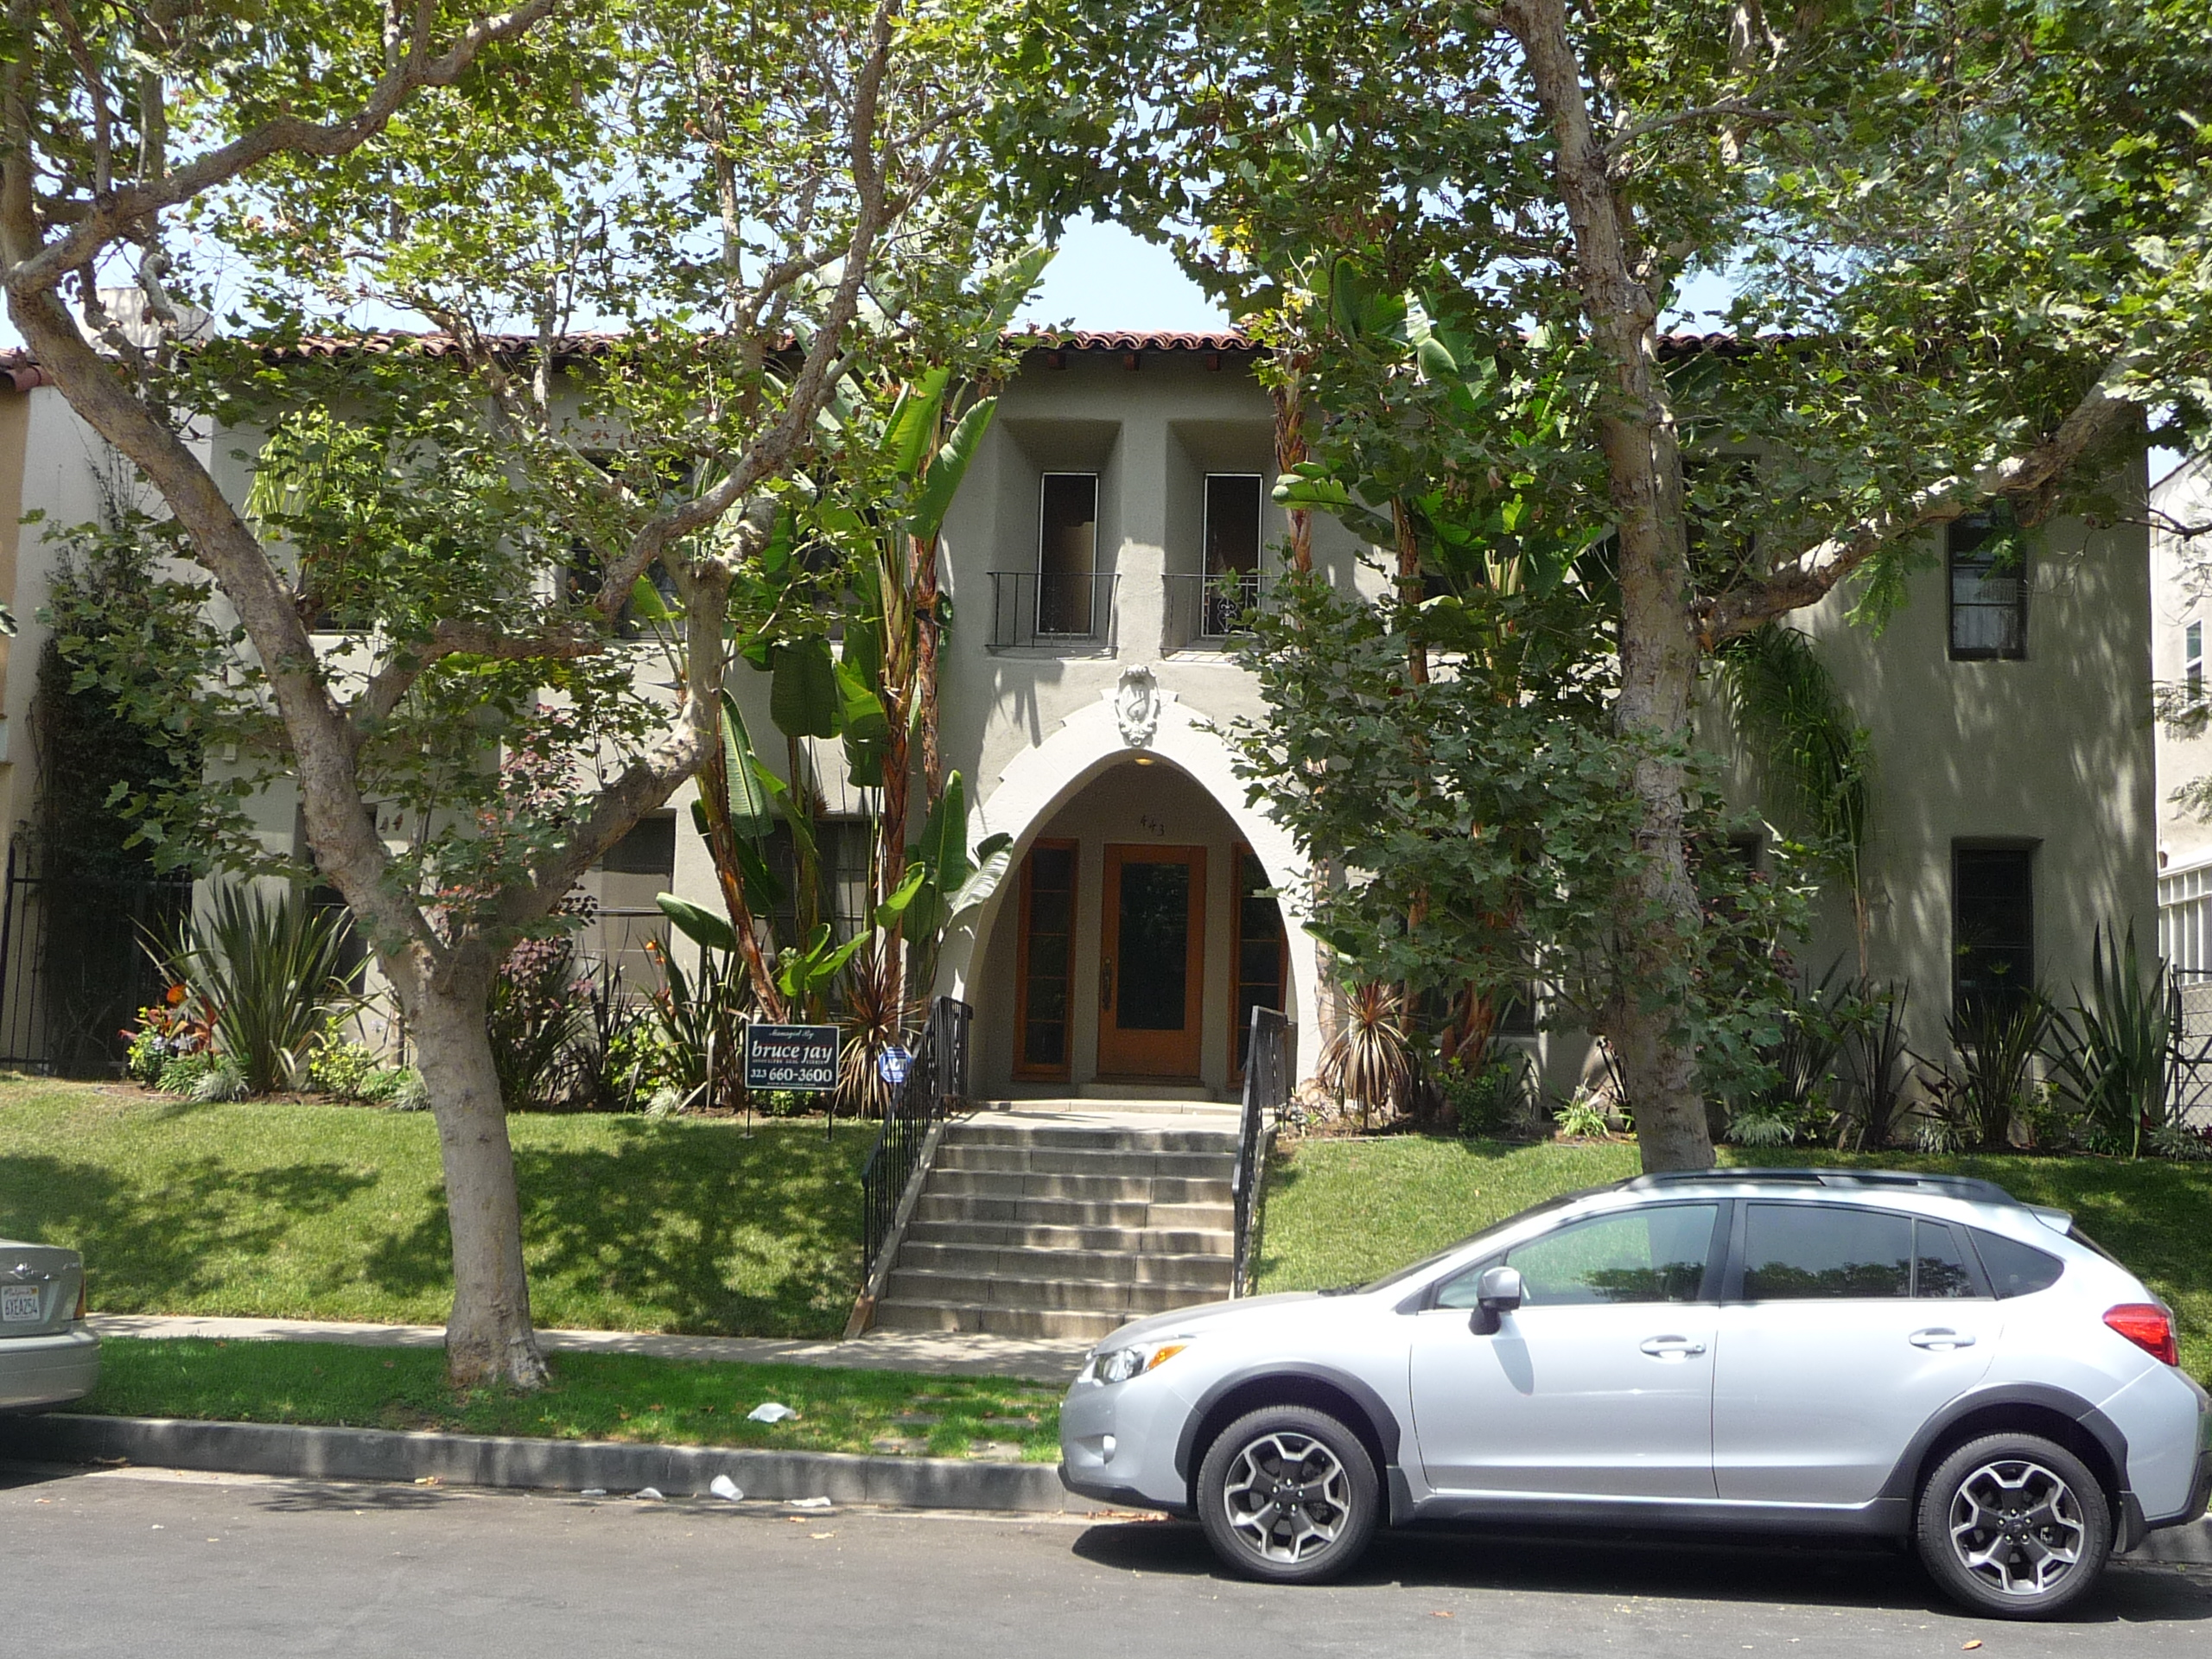 443 N SYCAMORE AVE - PHOTO